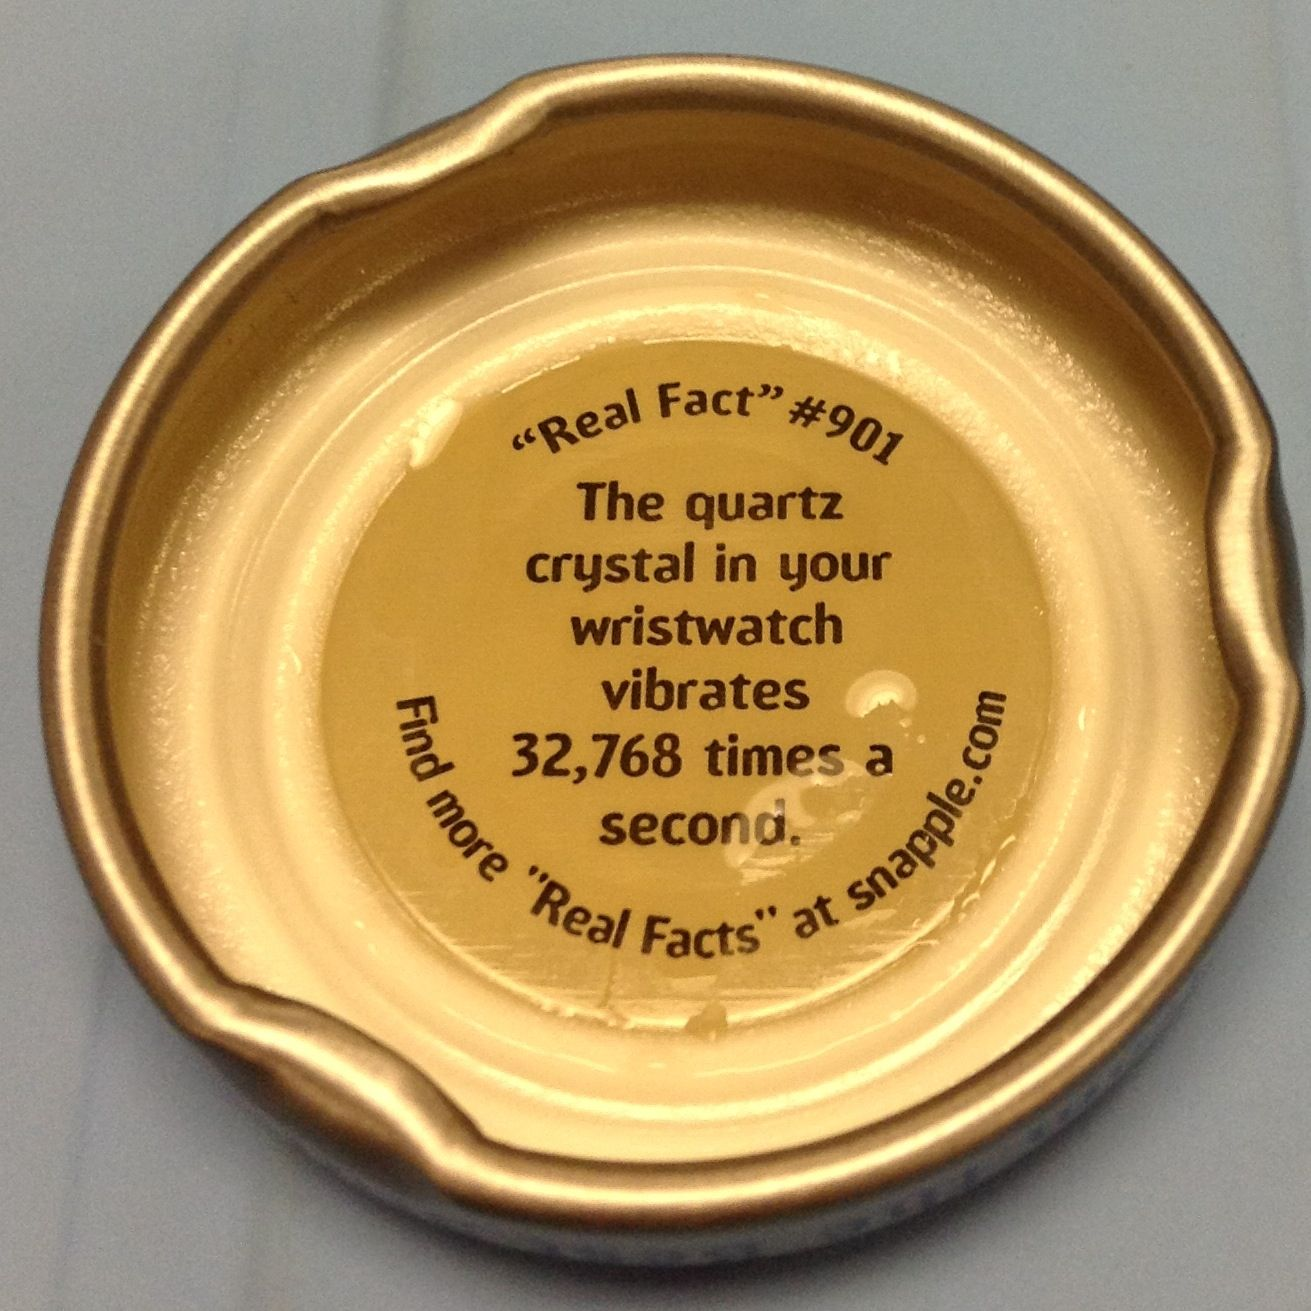 Today S Snapple Lid Real Facts Giant Jenga Pie Dish